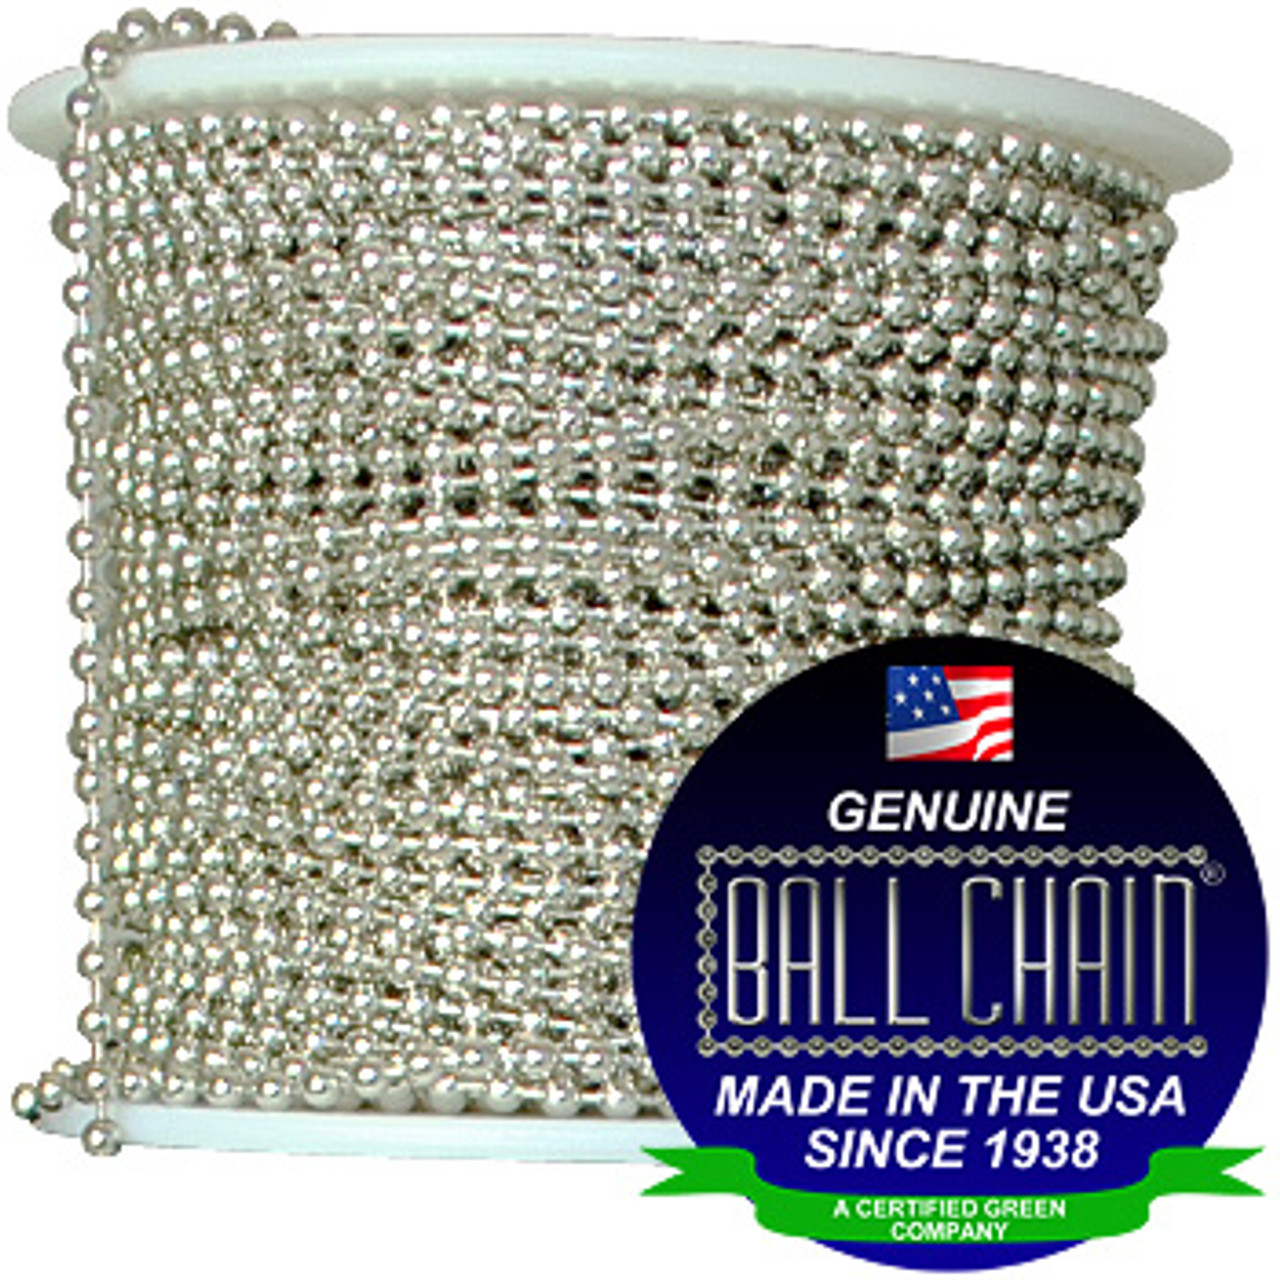 #1 Nickel Plated Steel Ball Chain Spool is great for fine jewelry and necklaces. Lightweight and easy to handle this size bead chain is the smallest diameter that we offer.